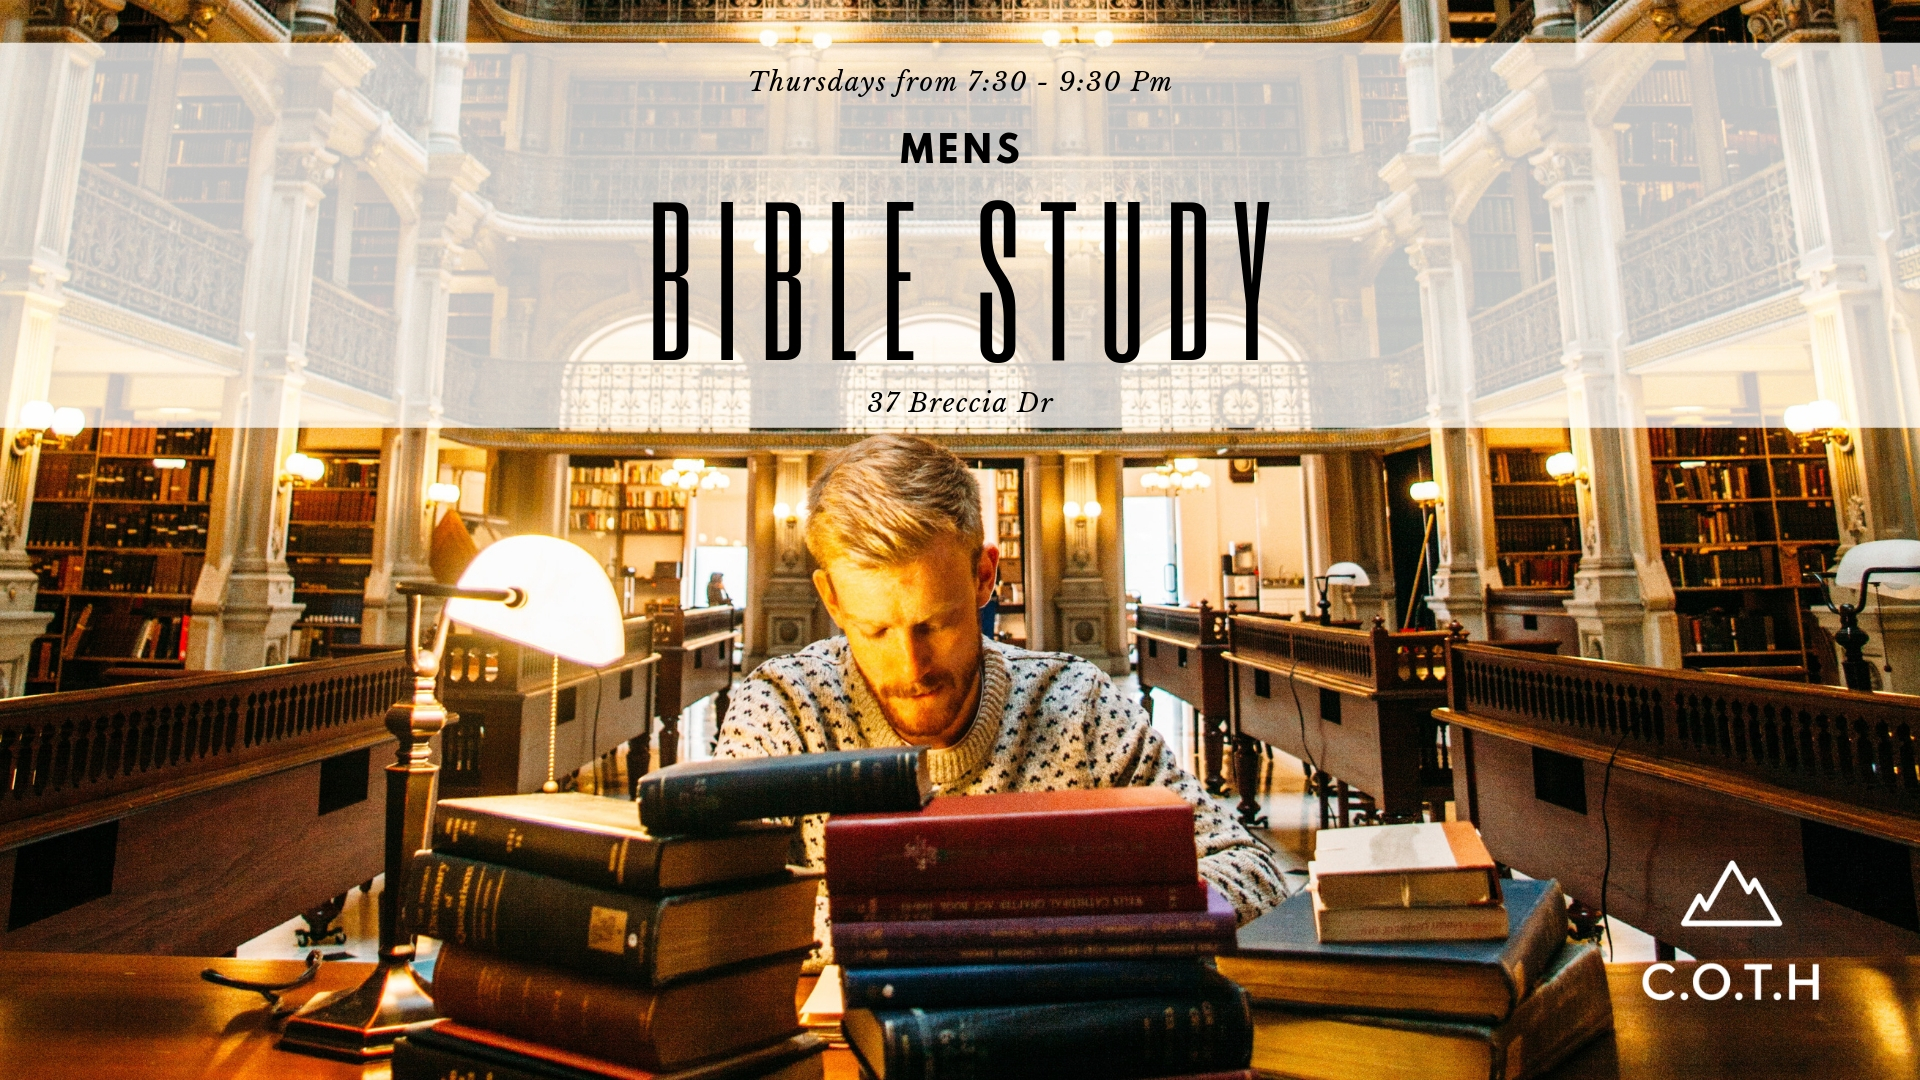 Men's bible study - Thursday from 7:30 - 9:30 Pm